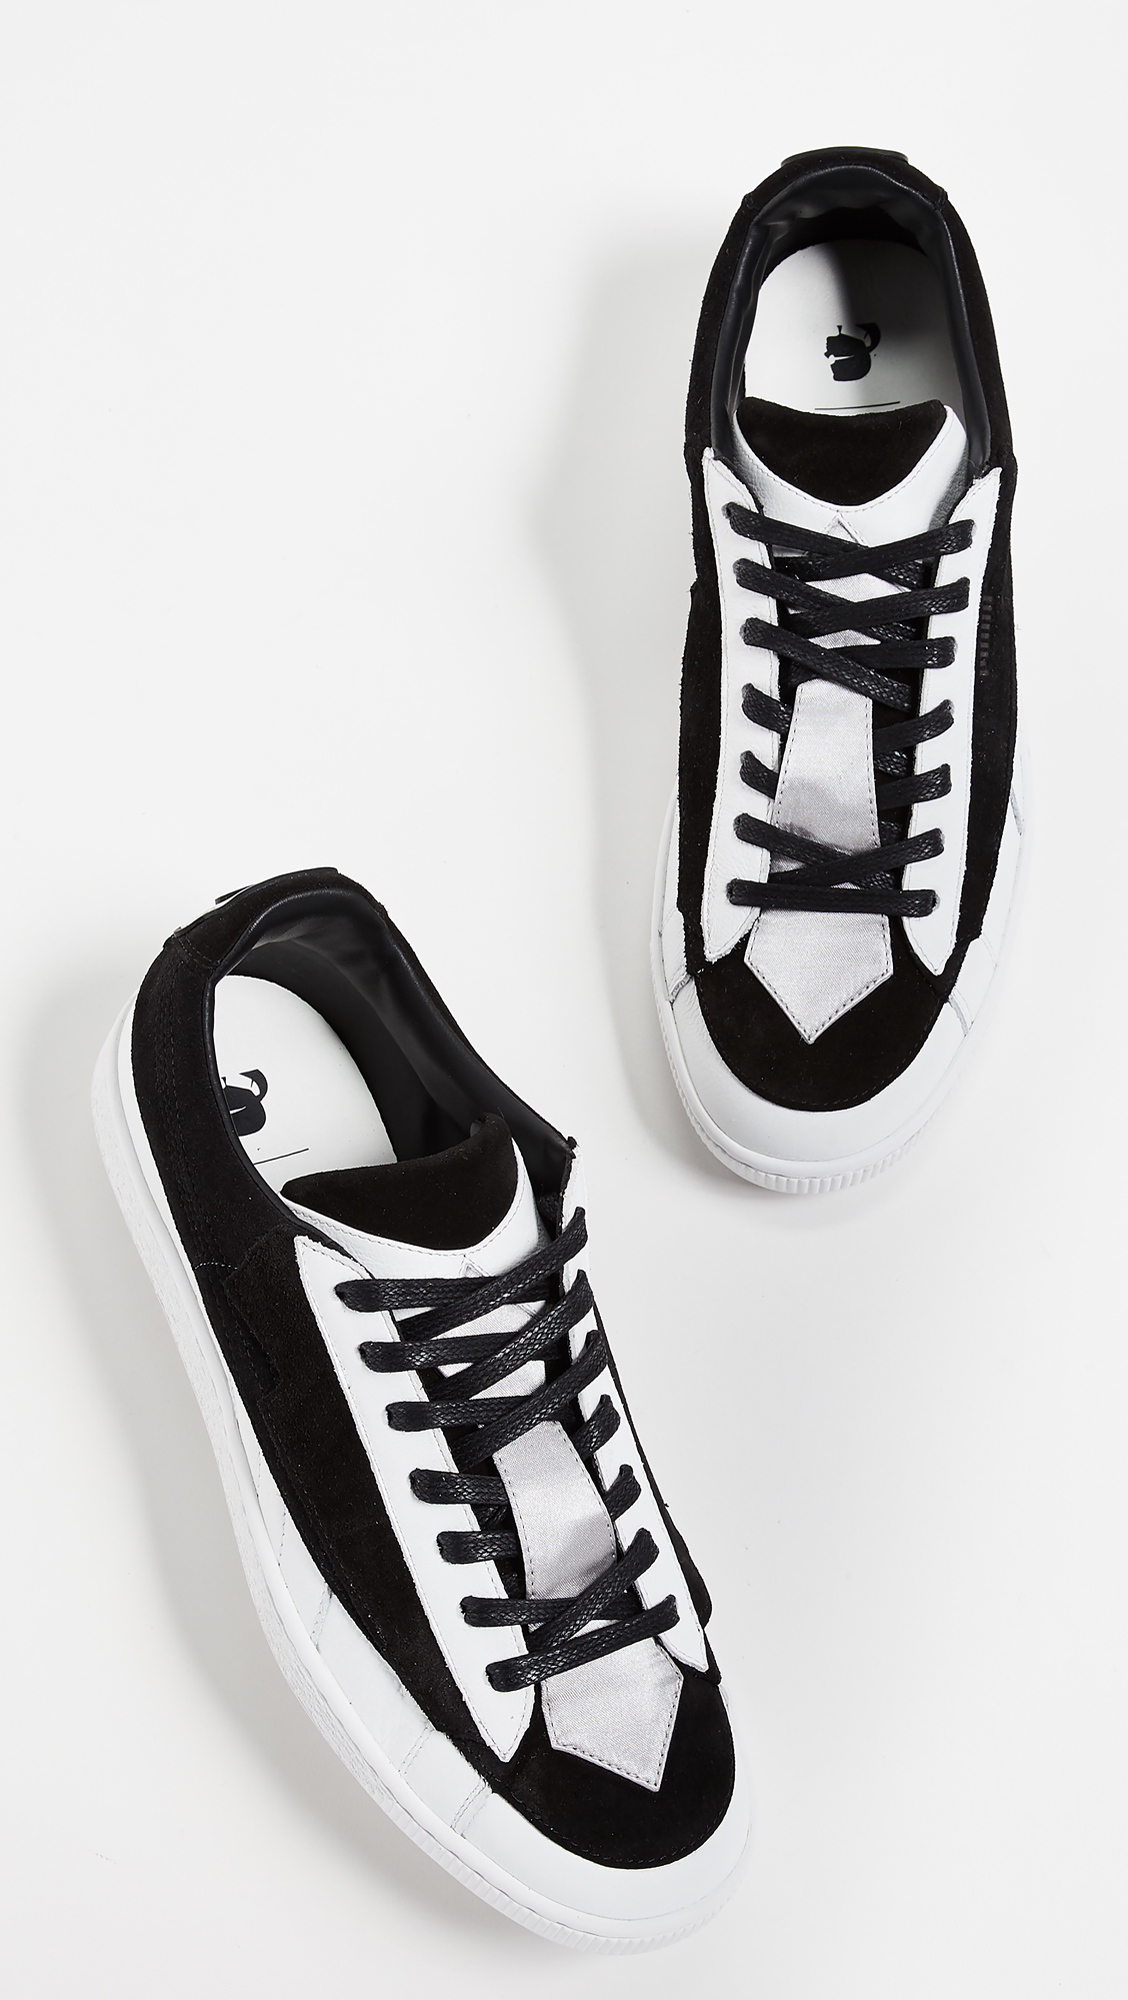 2890229d9d1 PUMA Select x Karl Lagerfeld 2 Suede Classic Sneakers